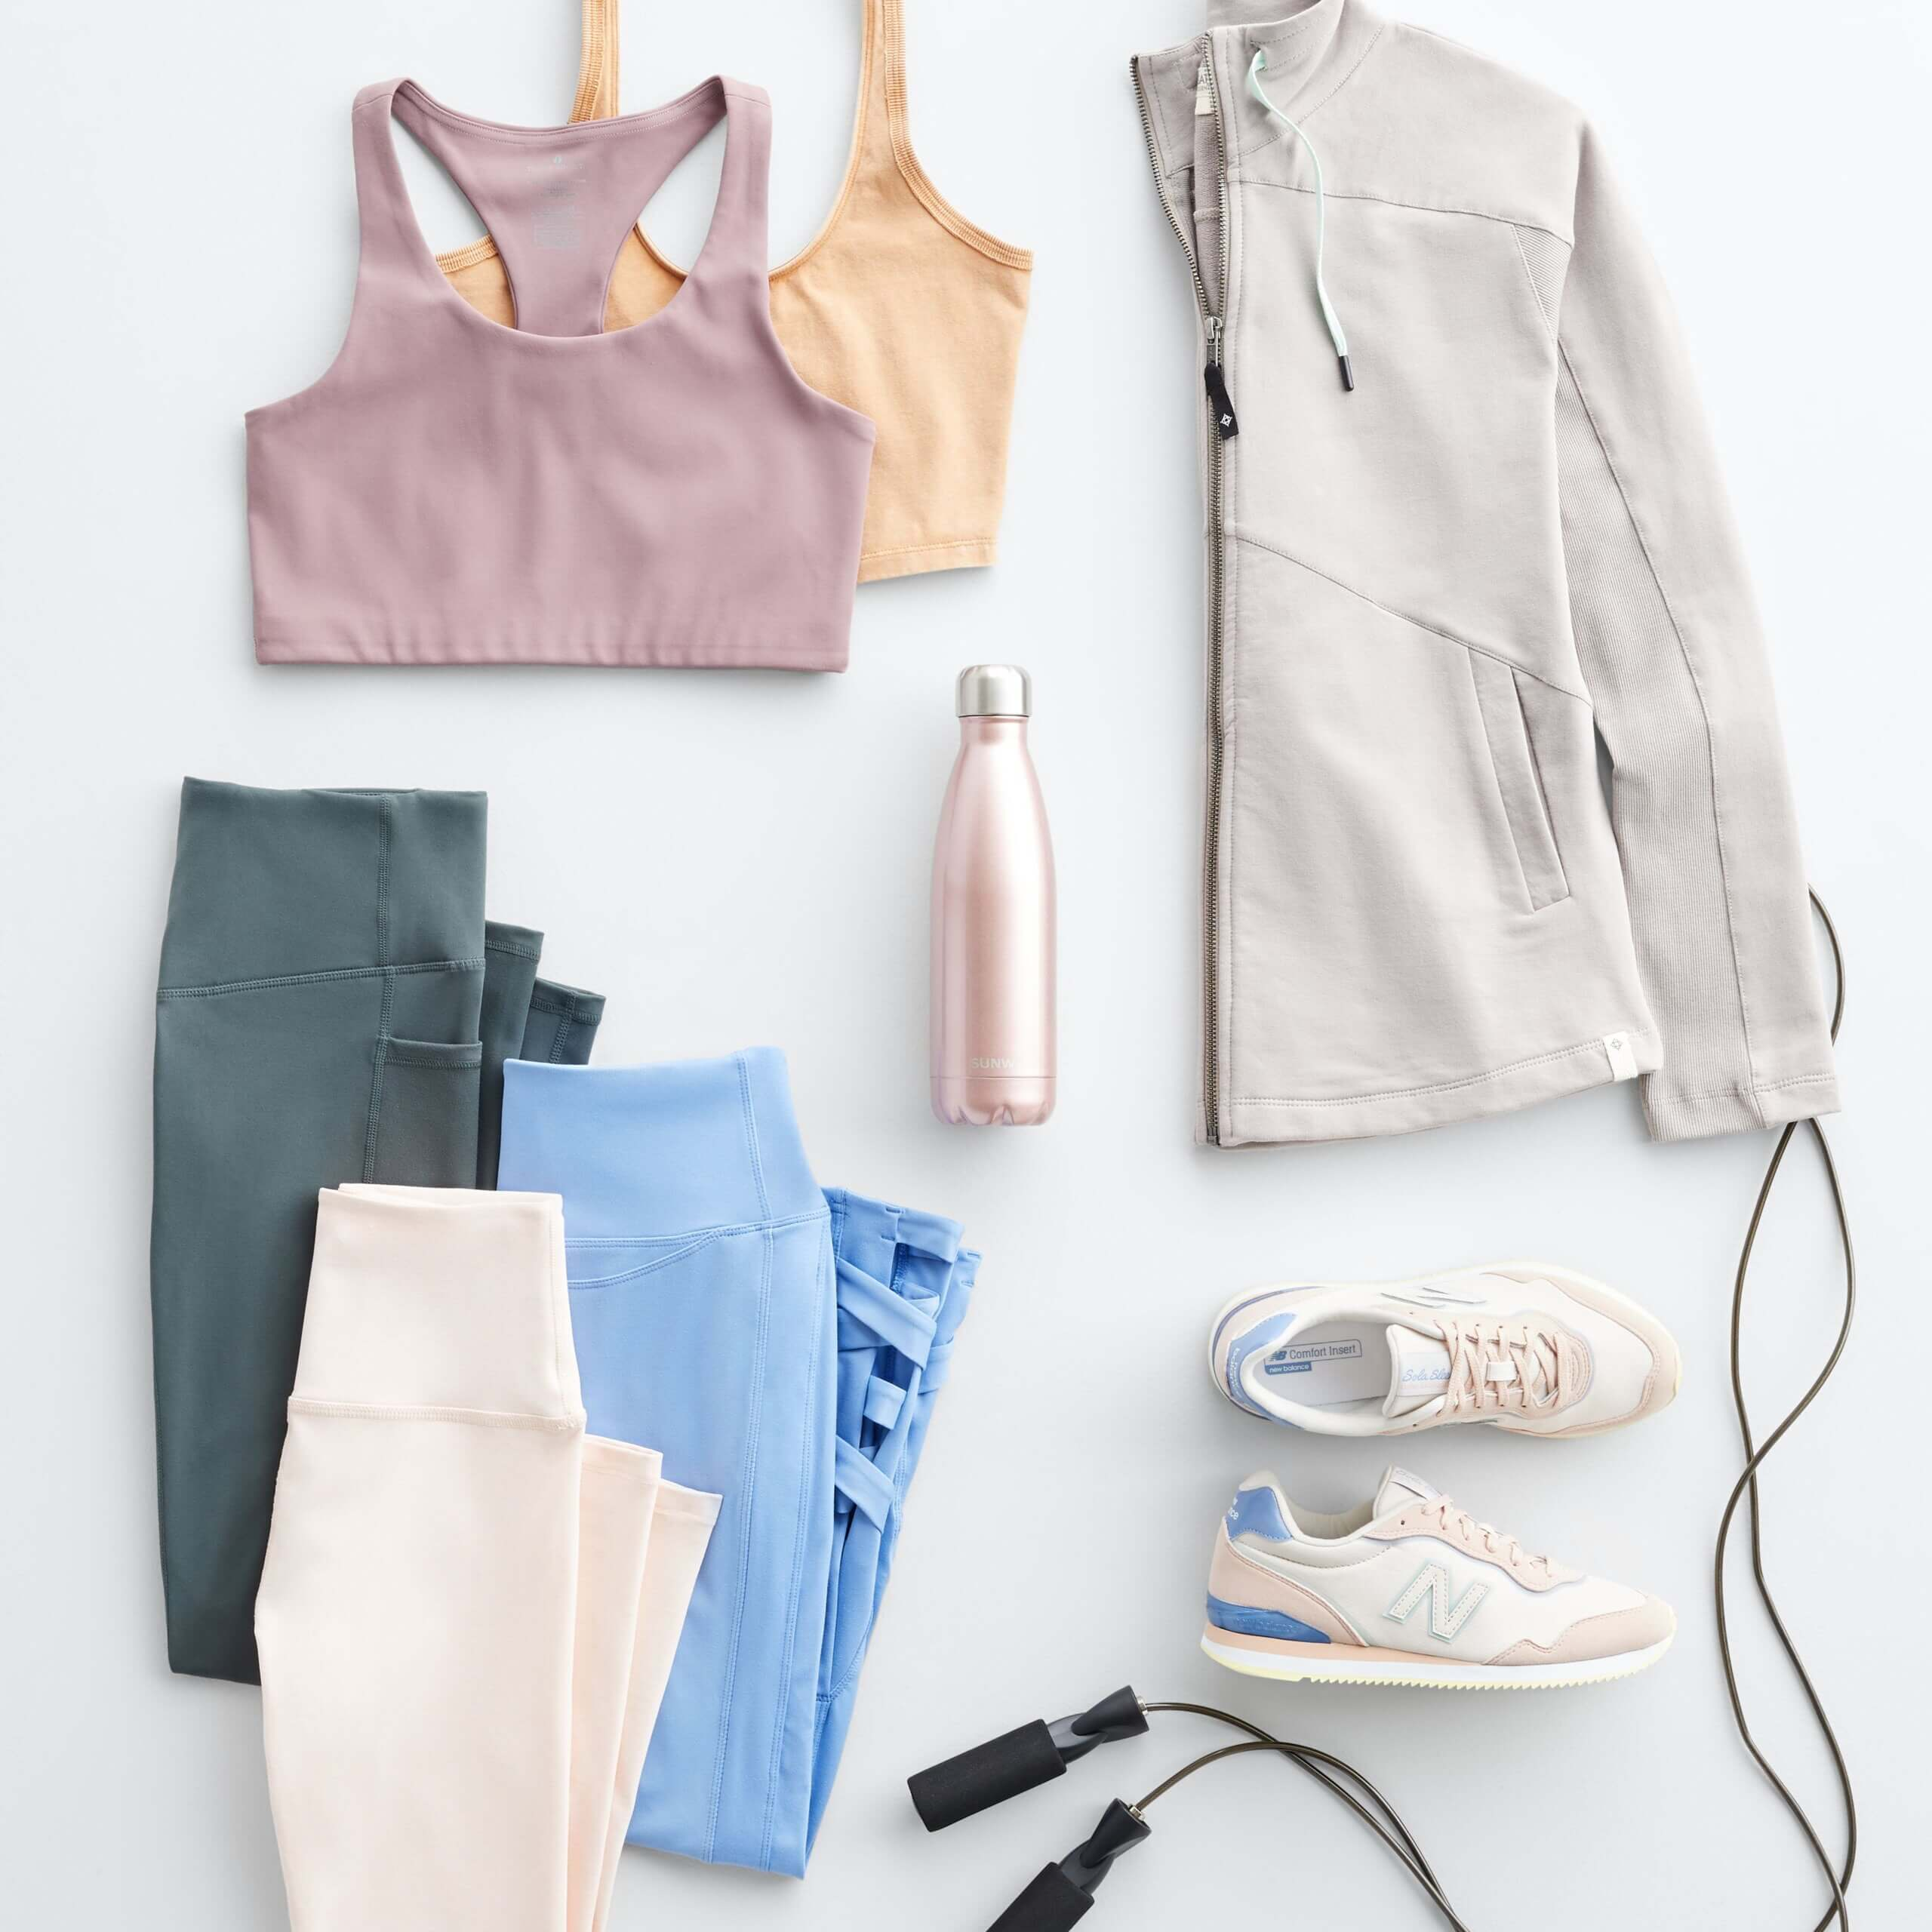 Stitch Fix Women's laydown featuring sports bras in mauve and orange, leggings in grey, light blue and blush, grey active jacket and white sneakers with pink and blue accents.